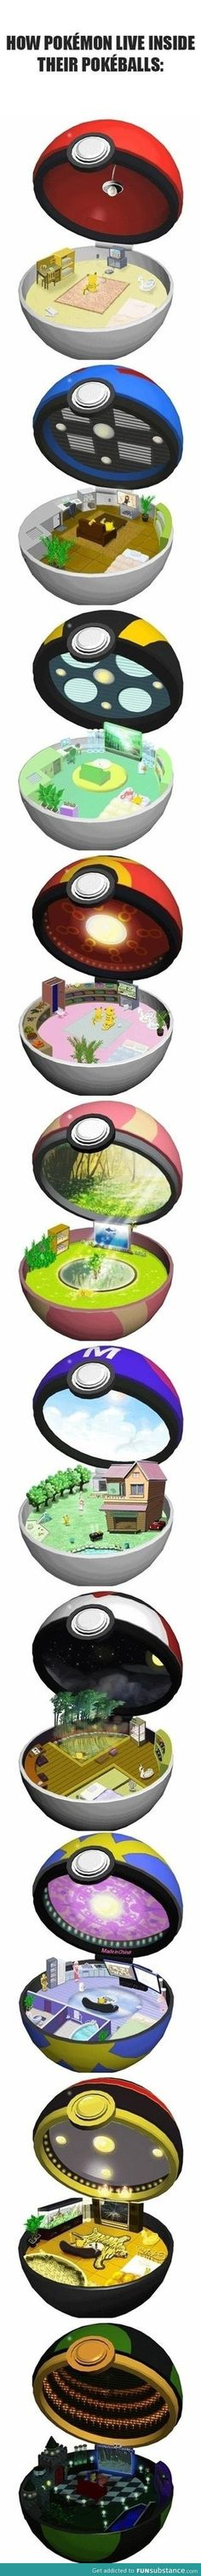 How Pokemon live inside their Pokeballs. Cute. :P